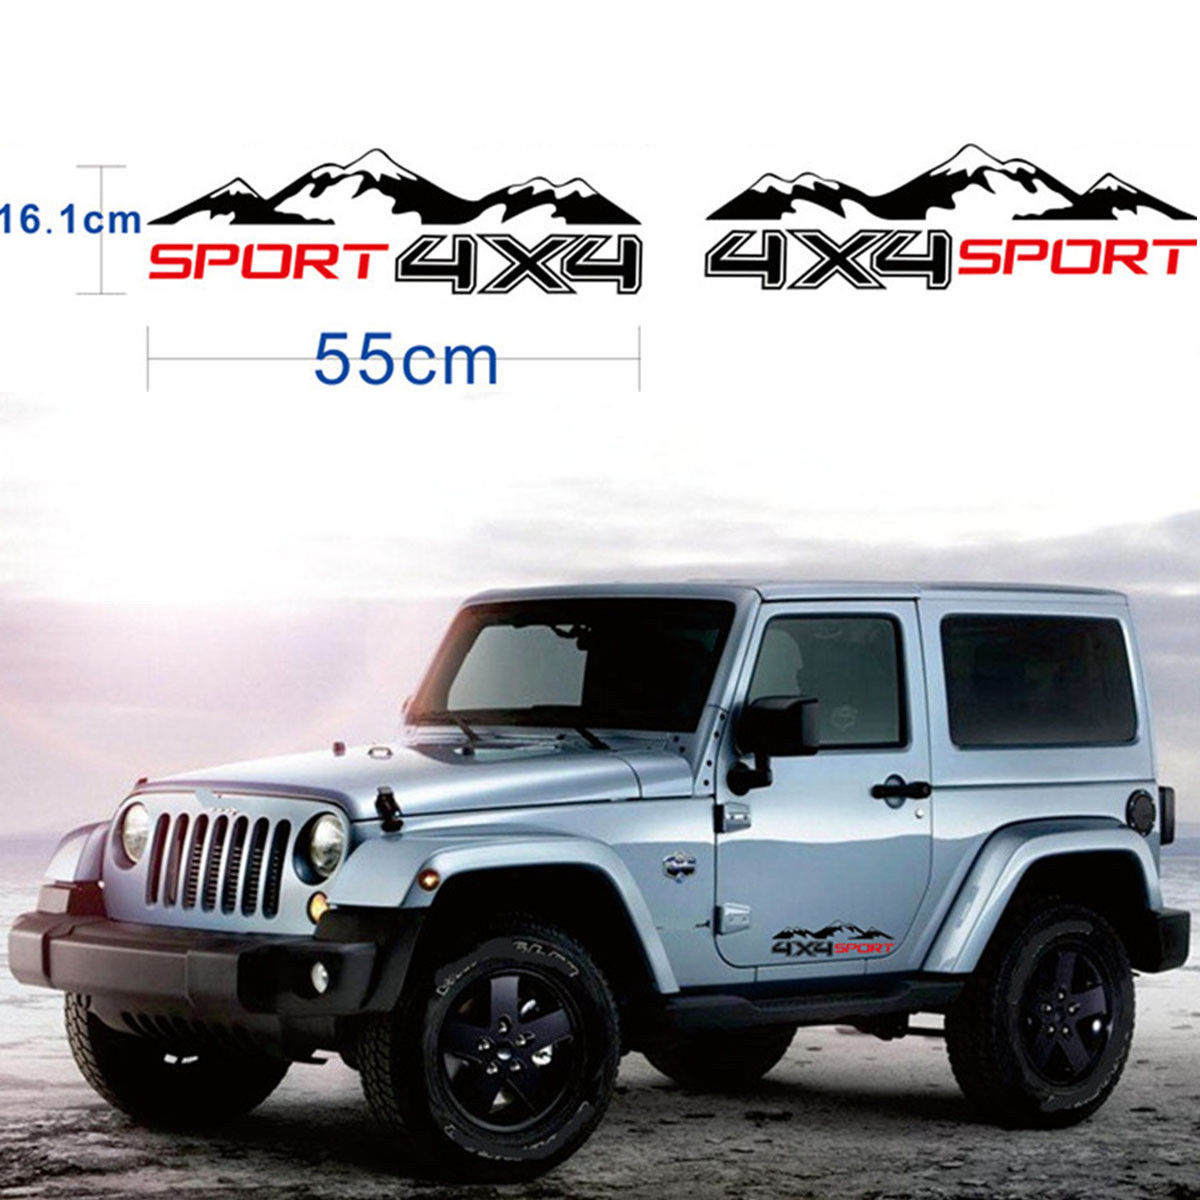 Graphic Vinyl 4X4 Mountain Car Decal Sticker For Truck SUV JEEP Pickup 2pcs